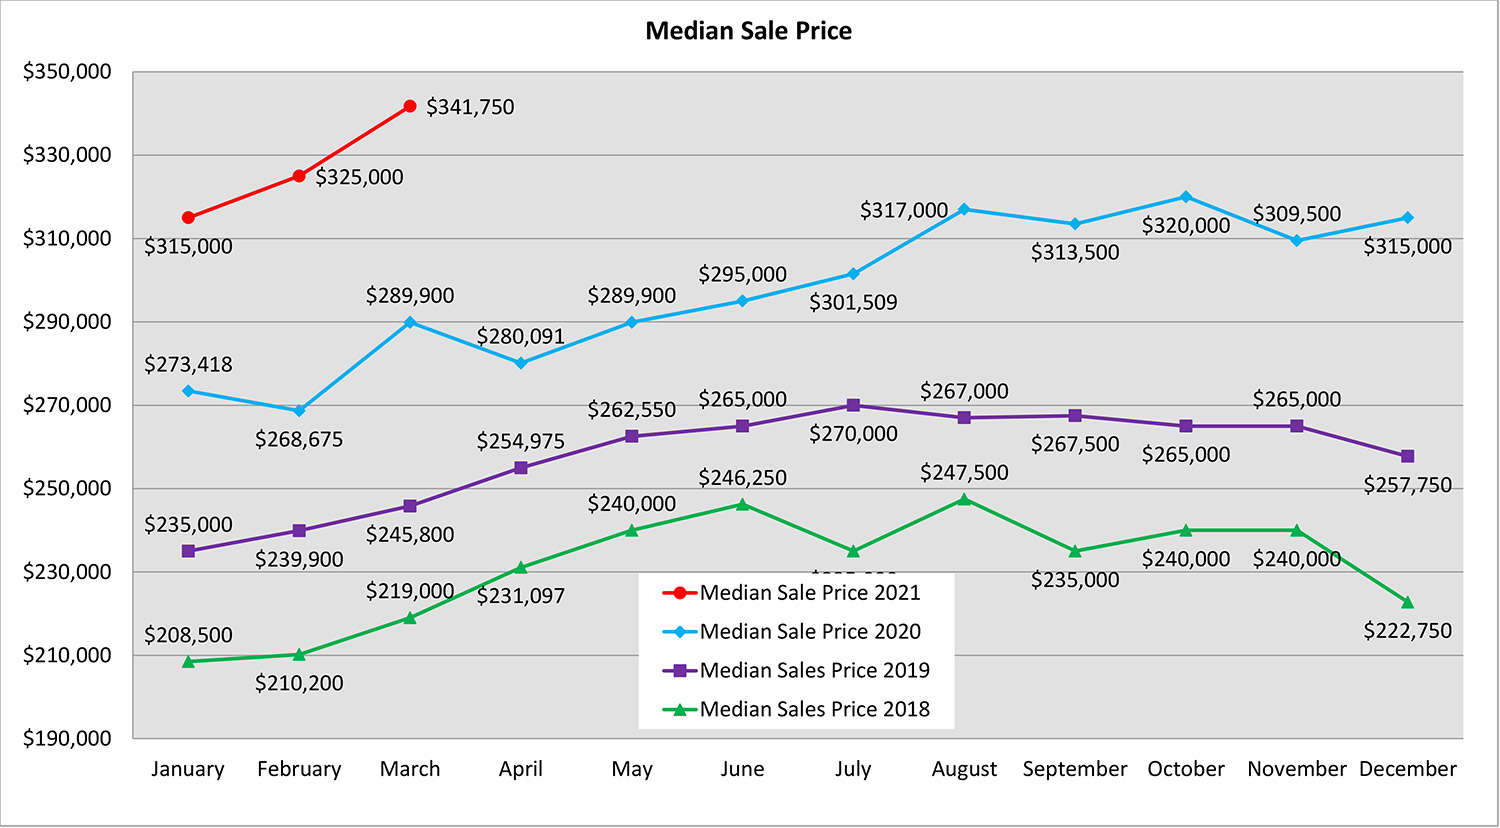 Spokane real estate market median sale price